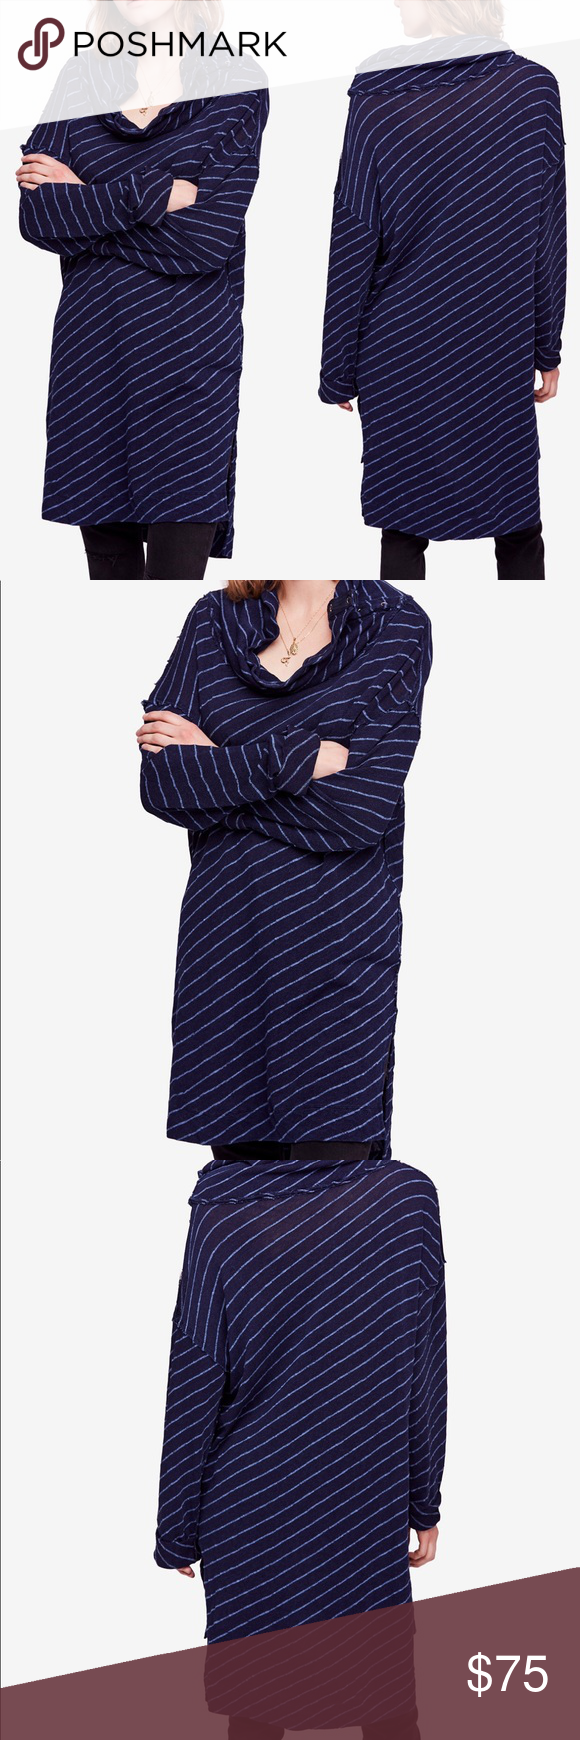 "FREE PEOPLE Gotta Have It Indigo Striped Tunic NWT Brand new with tags  Free People Gotta Have It Tunic Long Tee In Indigo Striped Combo. Long tunic with snap button cowl and high low hem with side vents  Size: M Bust: 54"" Length: 42"" Free People Tops Tunics #gottahaveit FREE PEOPLE Gotta Have It Indigo Striped Tunic NWT Brand new with tags  Free People Gotta Have It Tunic Long Tee In Indigo Striped Combo. Long tunic with snap button cowl and high low hem with side vents  Size: M Bust: 54"" #gottahaveit"